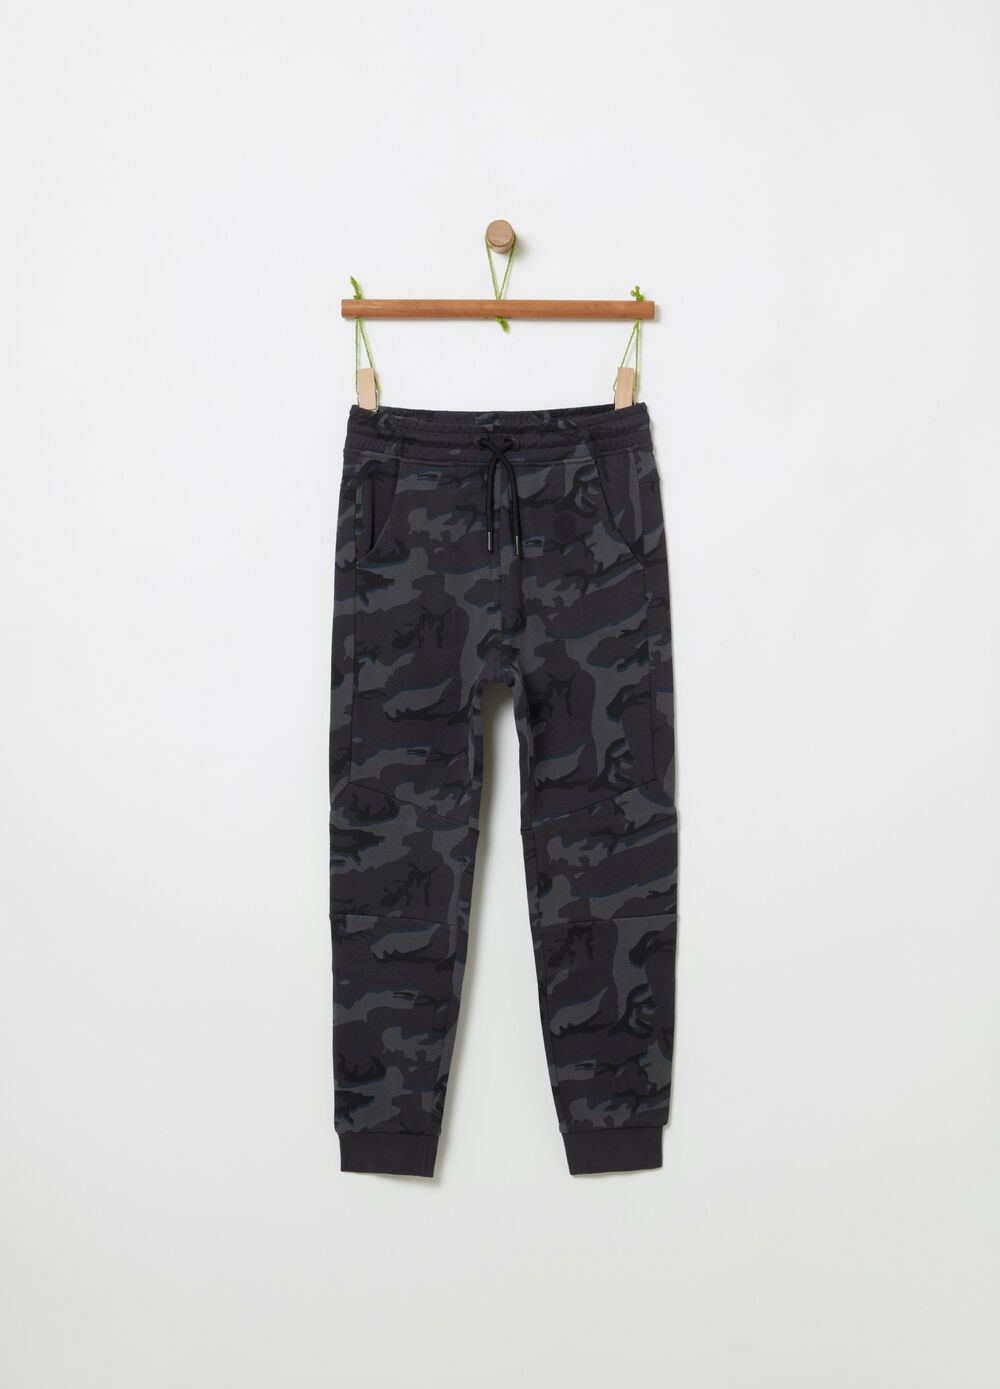 French terry camouflage joggers